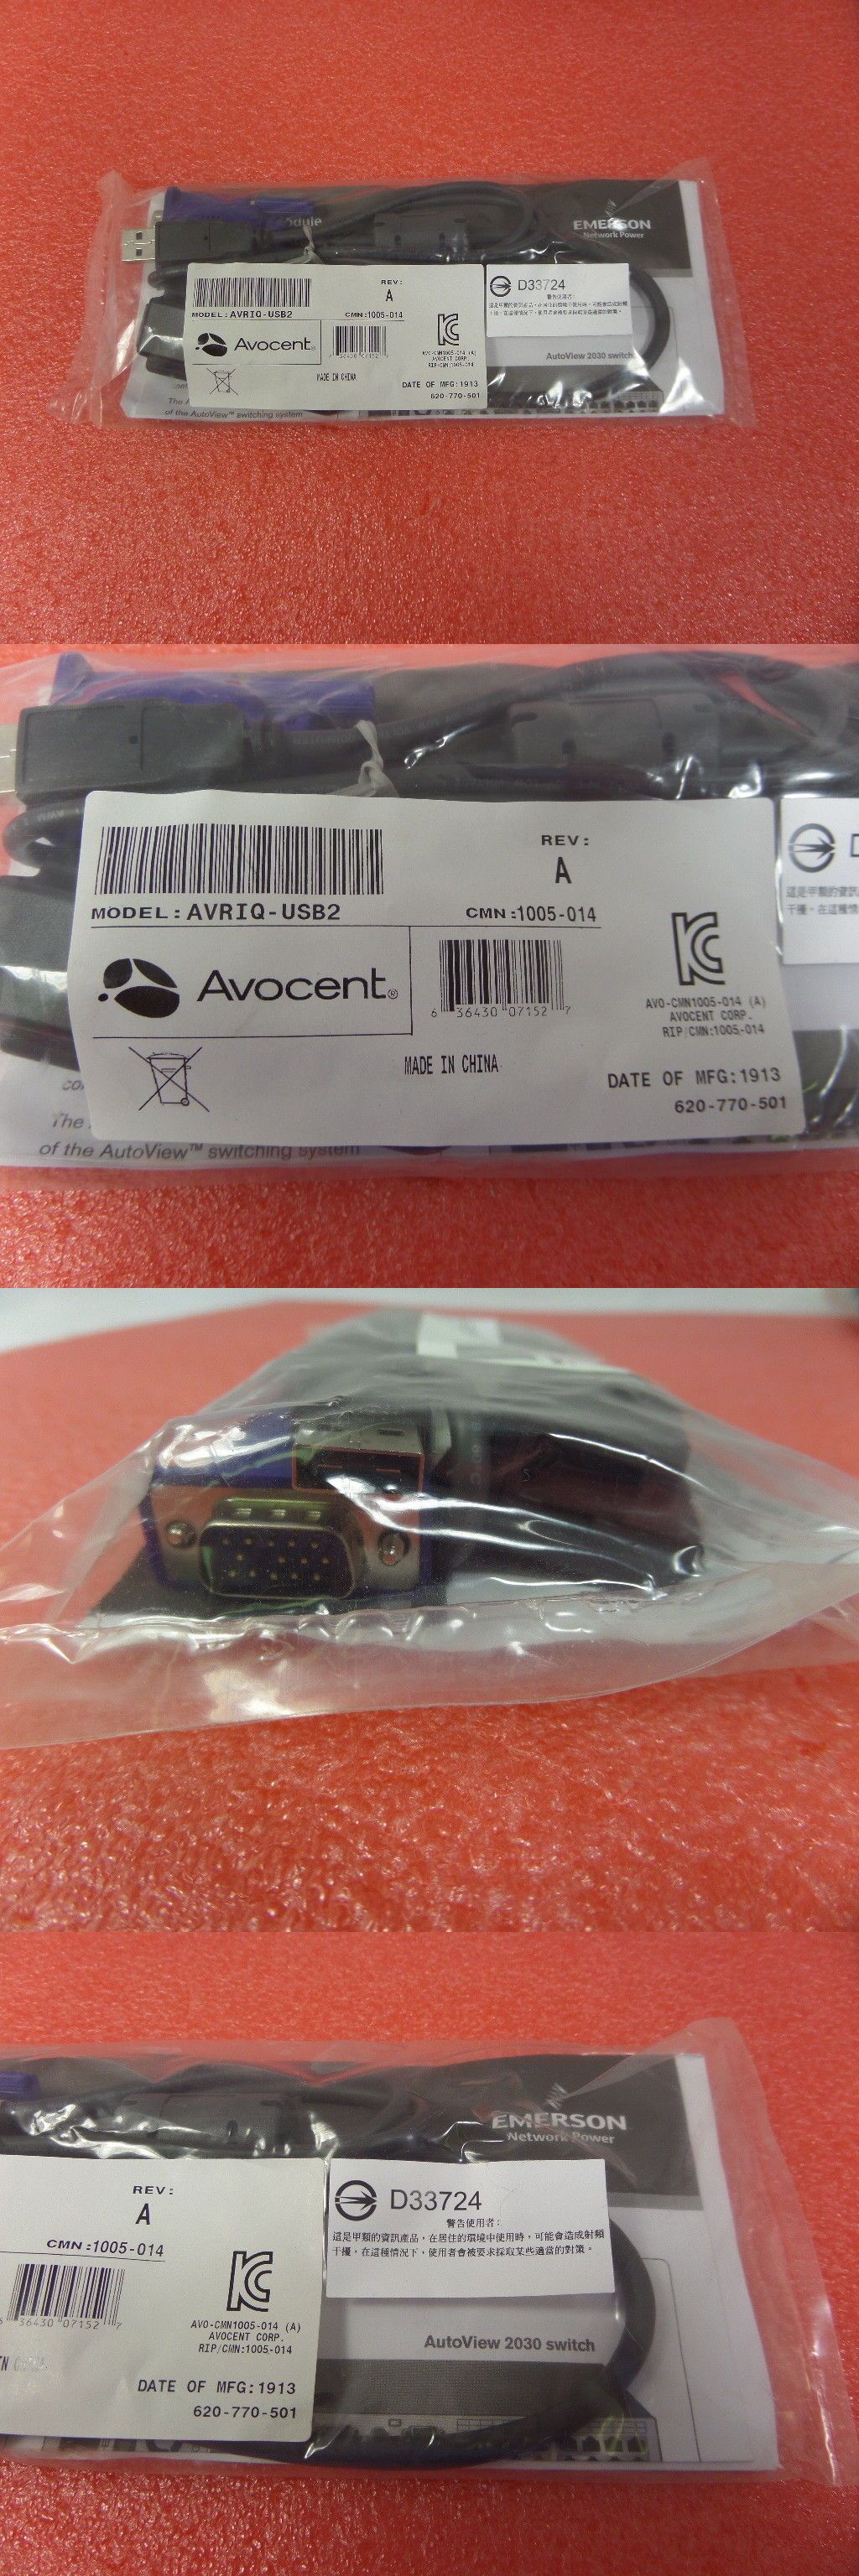 Kvm Cables 182095 Avocent Avriq Usb2 Kvm Interface Module Rj45 Network Switch Adapter 520 555 501 Buy It Now Only 40 Network Switch Kvm Cables Networking